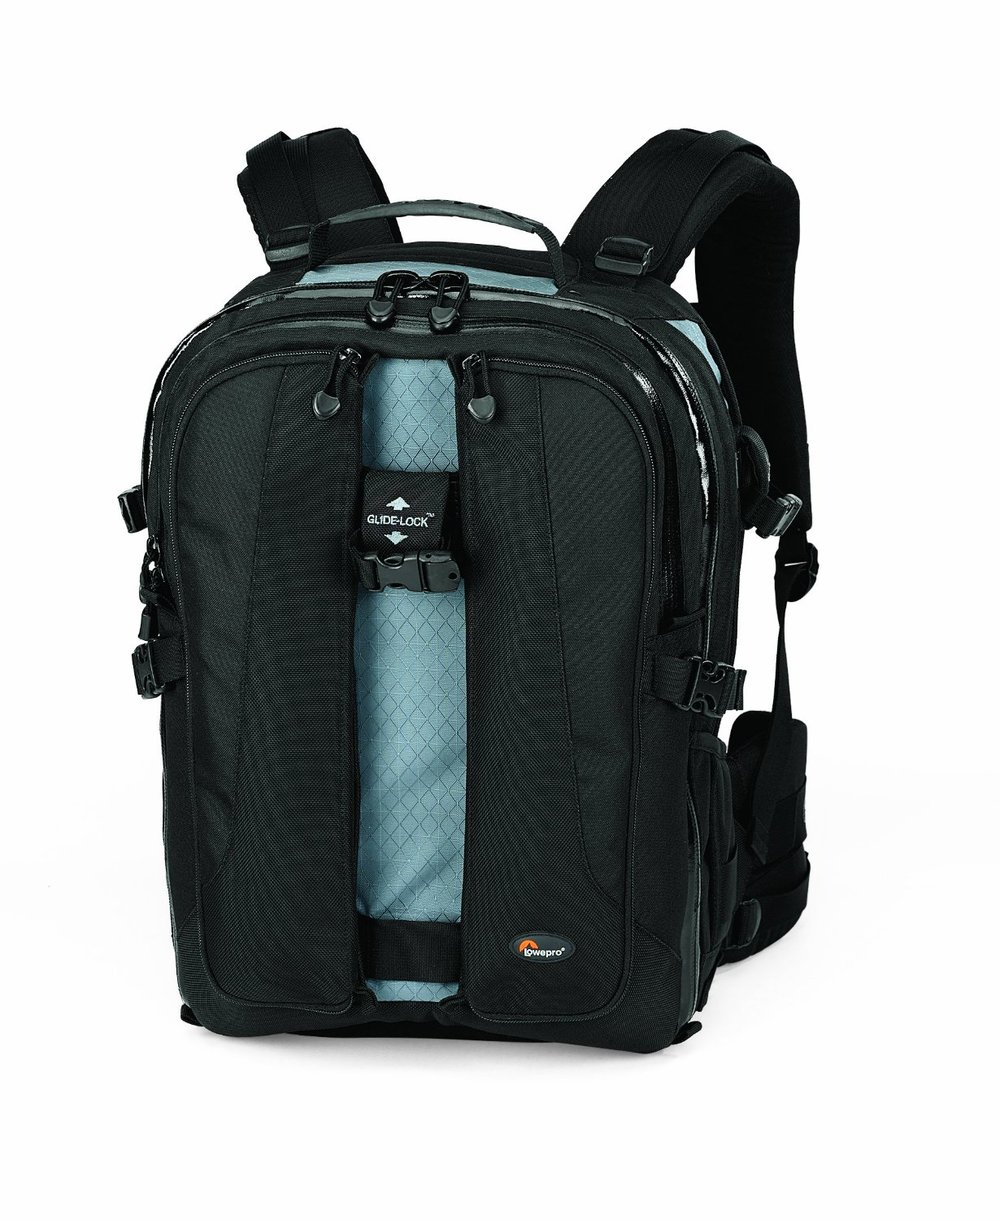 lowepro-vertex-camera-bag